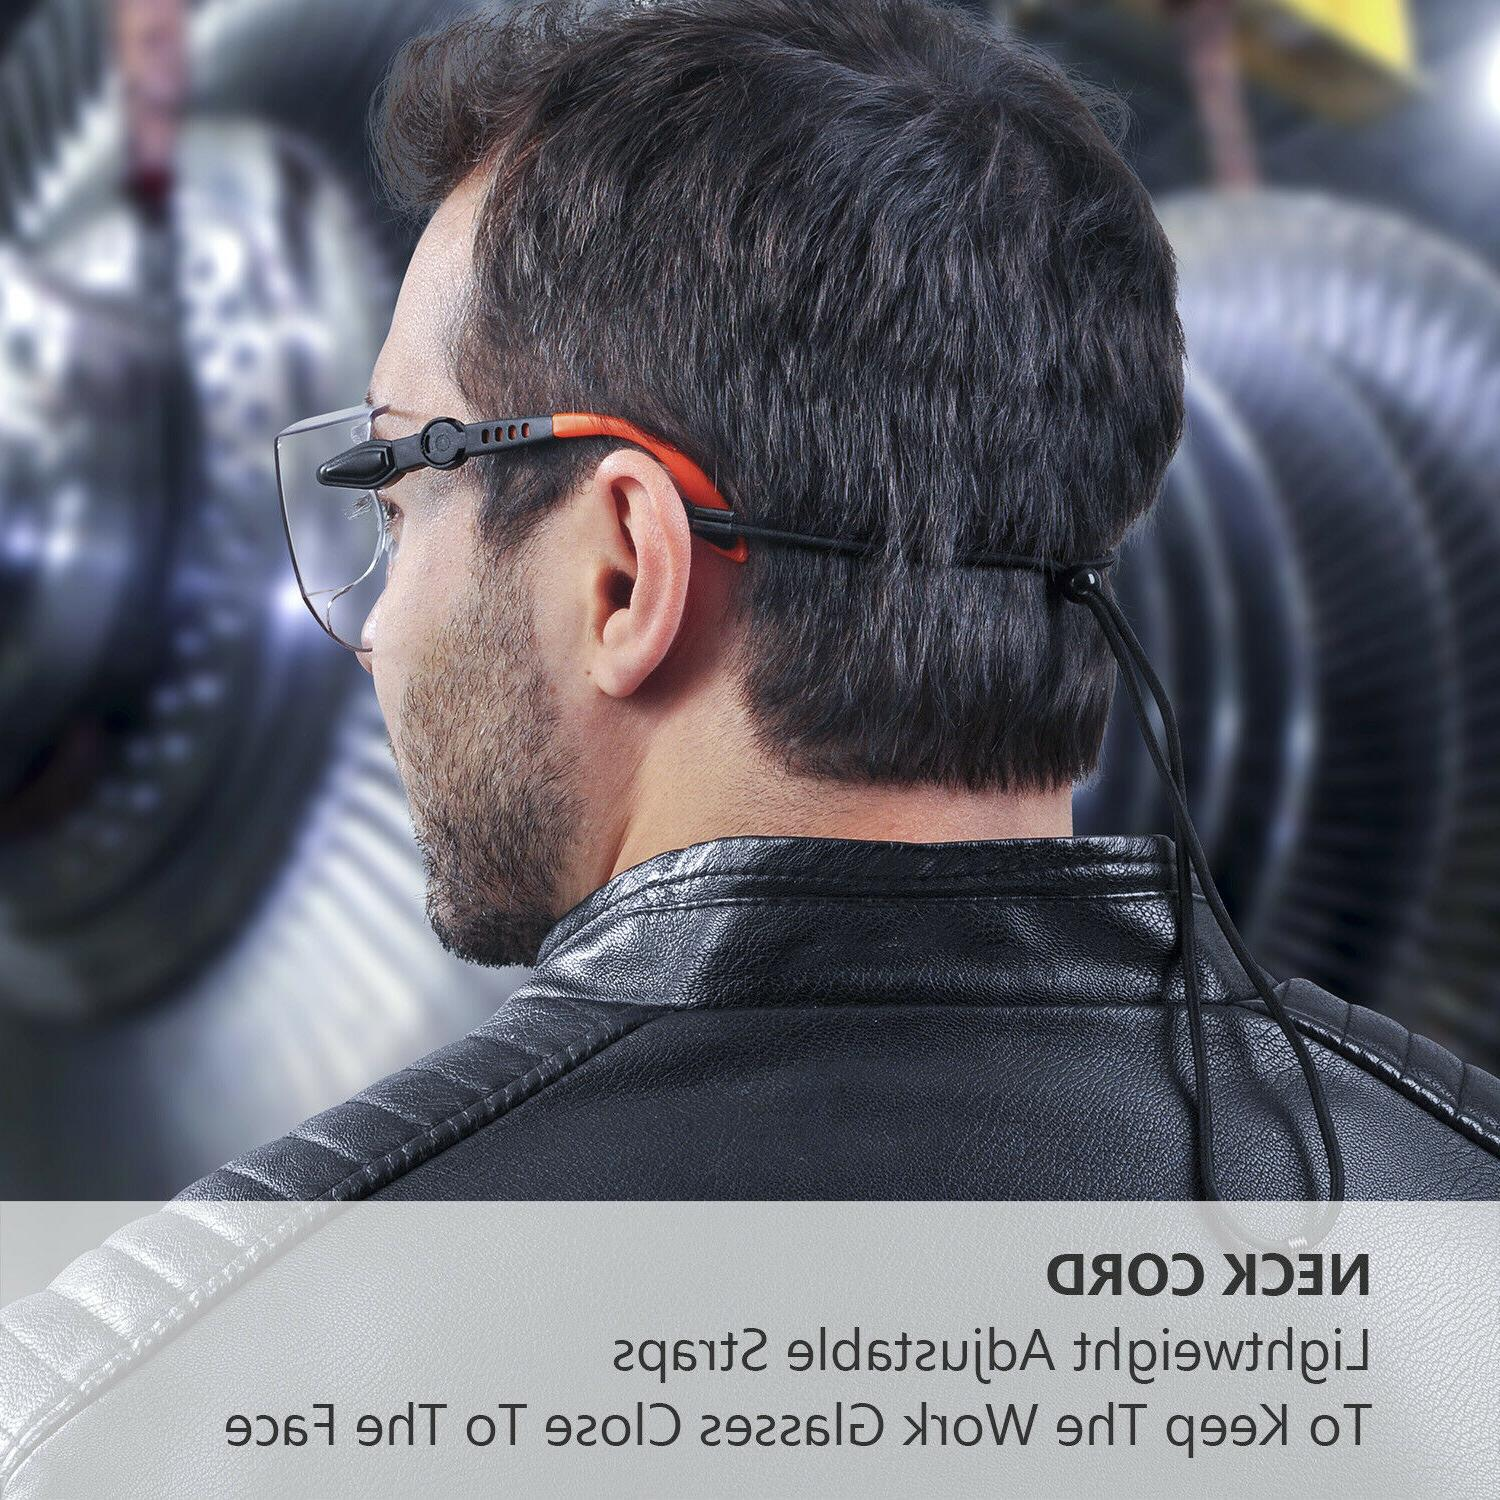 SAFEYEAR Glasses-SG009 Industrial Cover